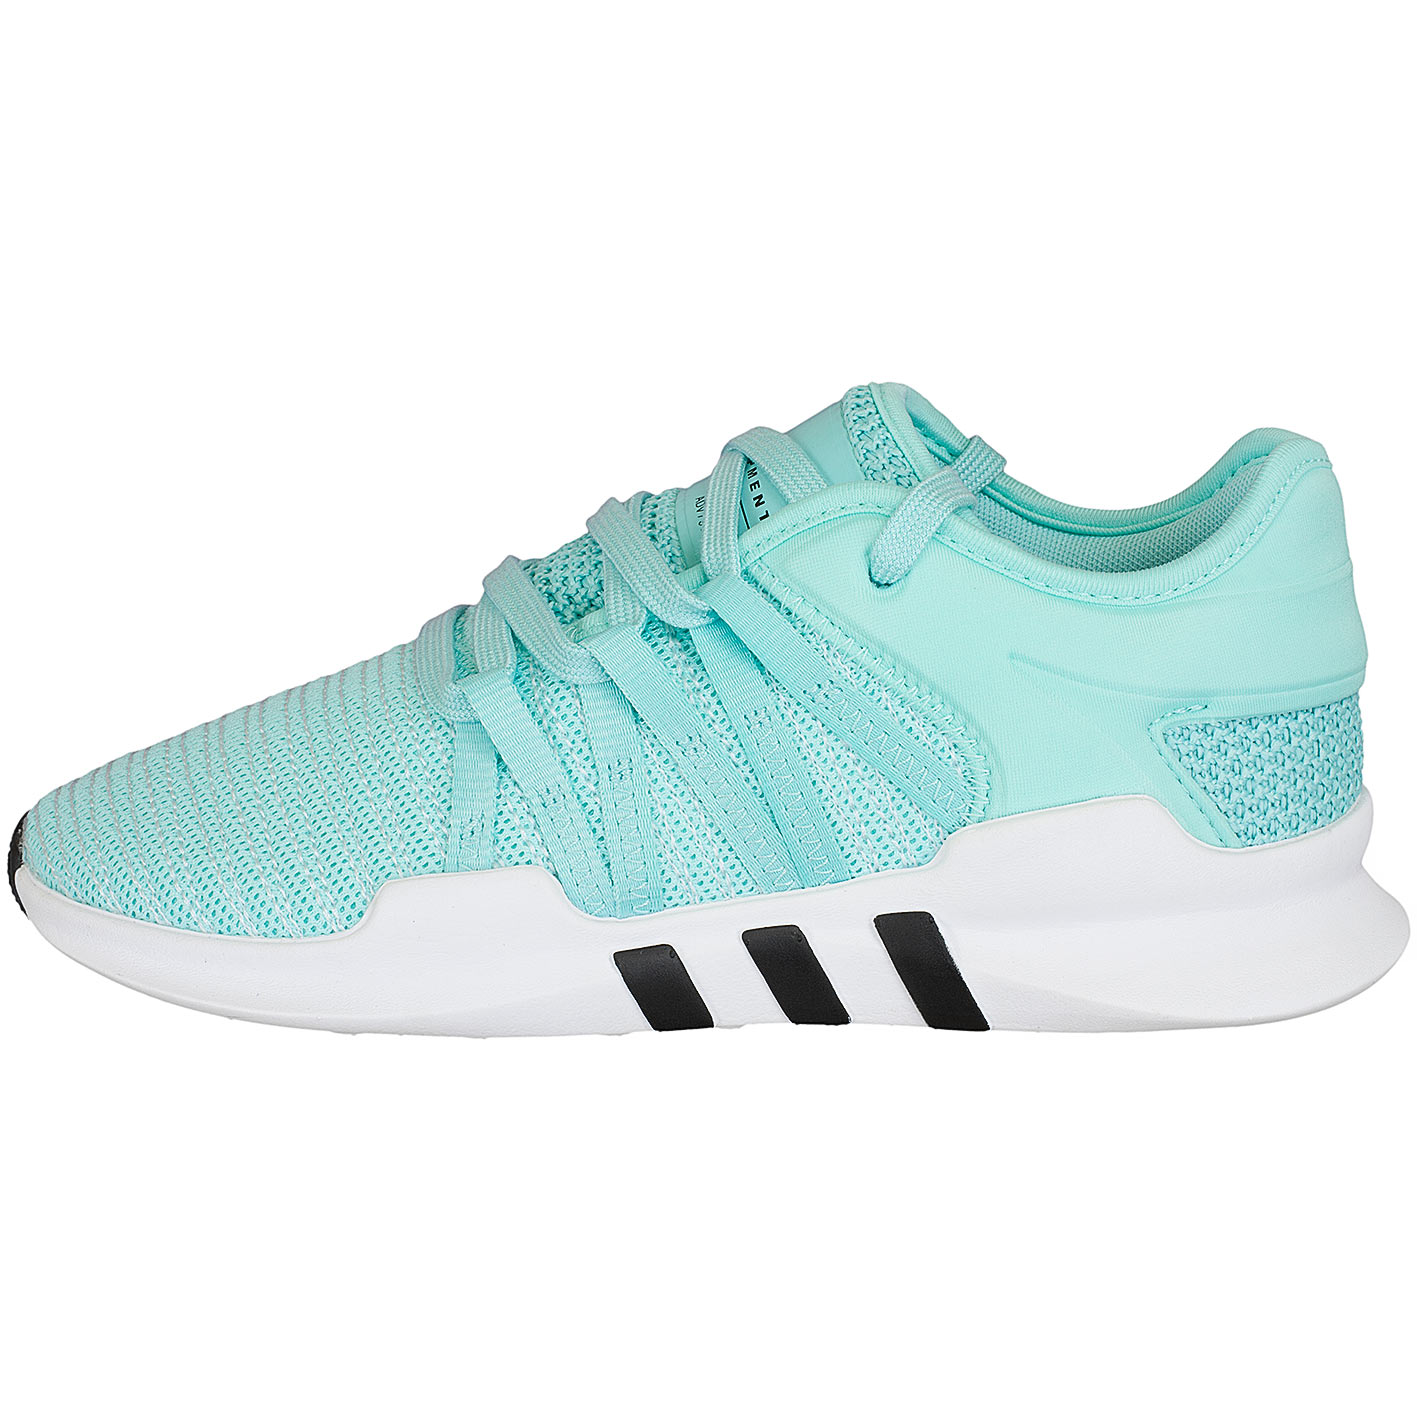 cheap for discount 4d186 f3246 Adidas Originals Damen Sneaker Equipment Racing ADV türkisweiß